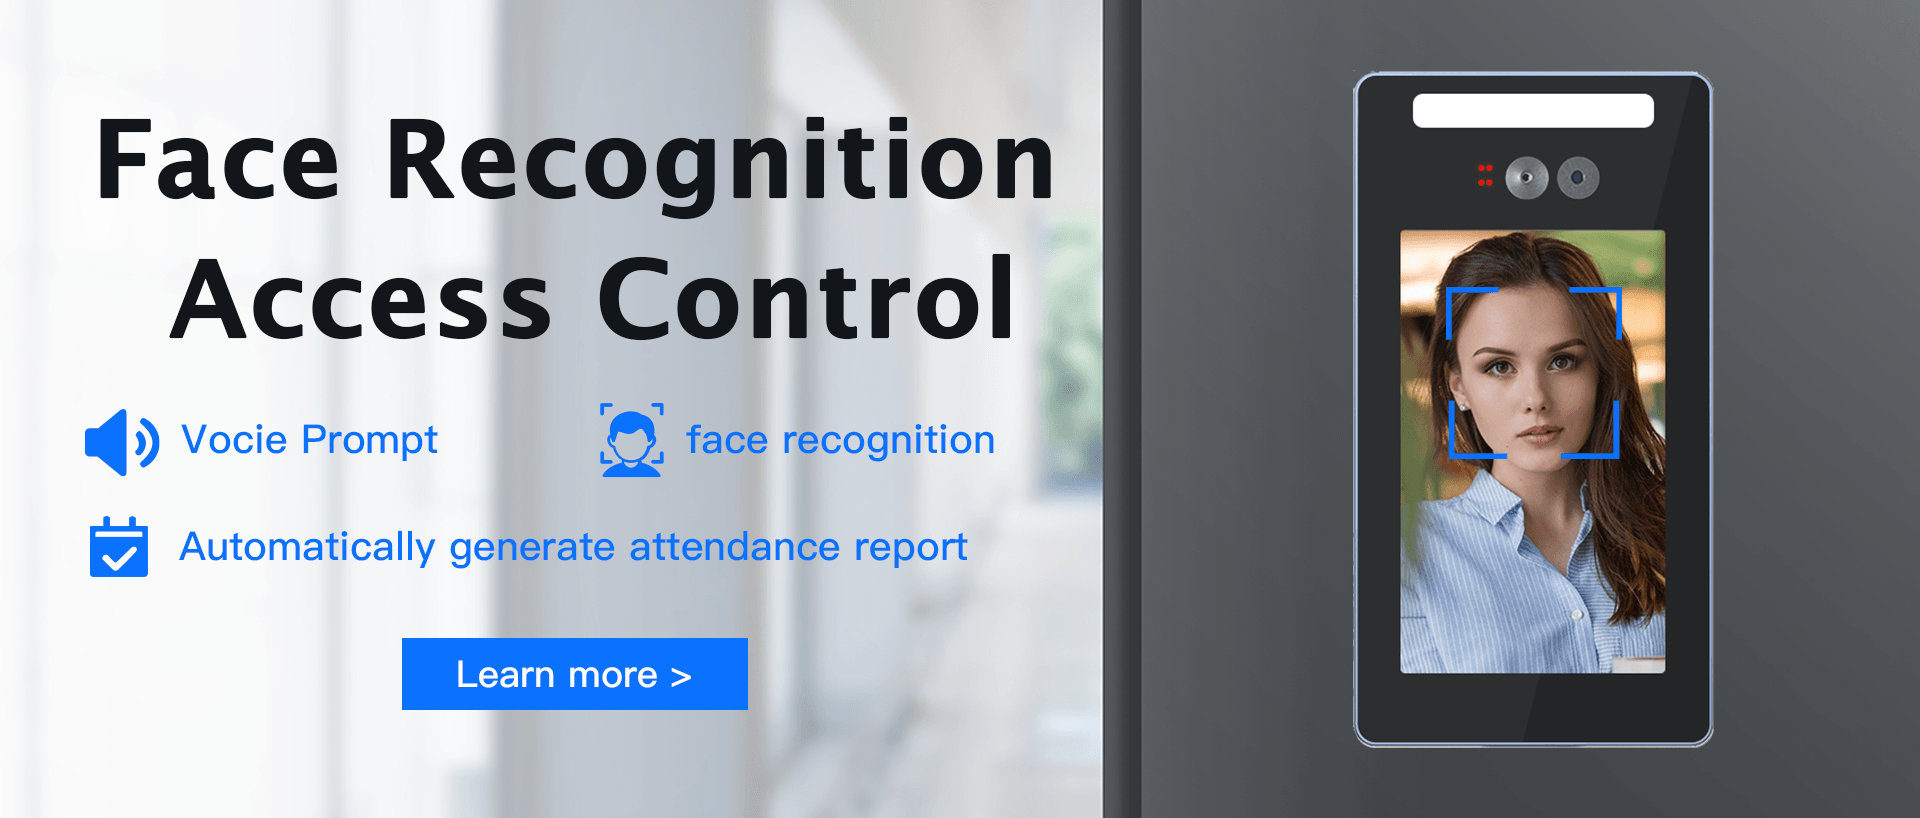 Face Recognition Family Access Control, Vocie Prompt, face recognition, Automatically generate atten